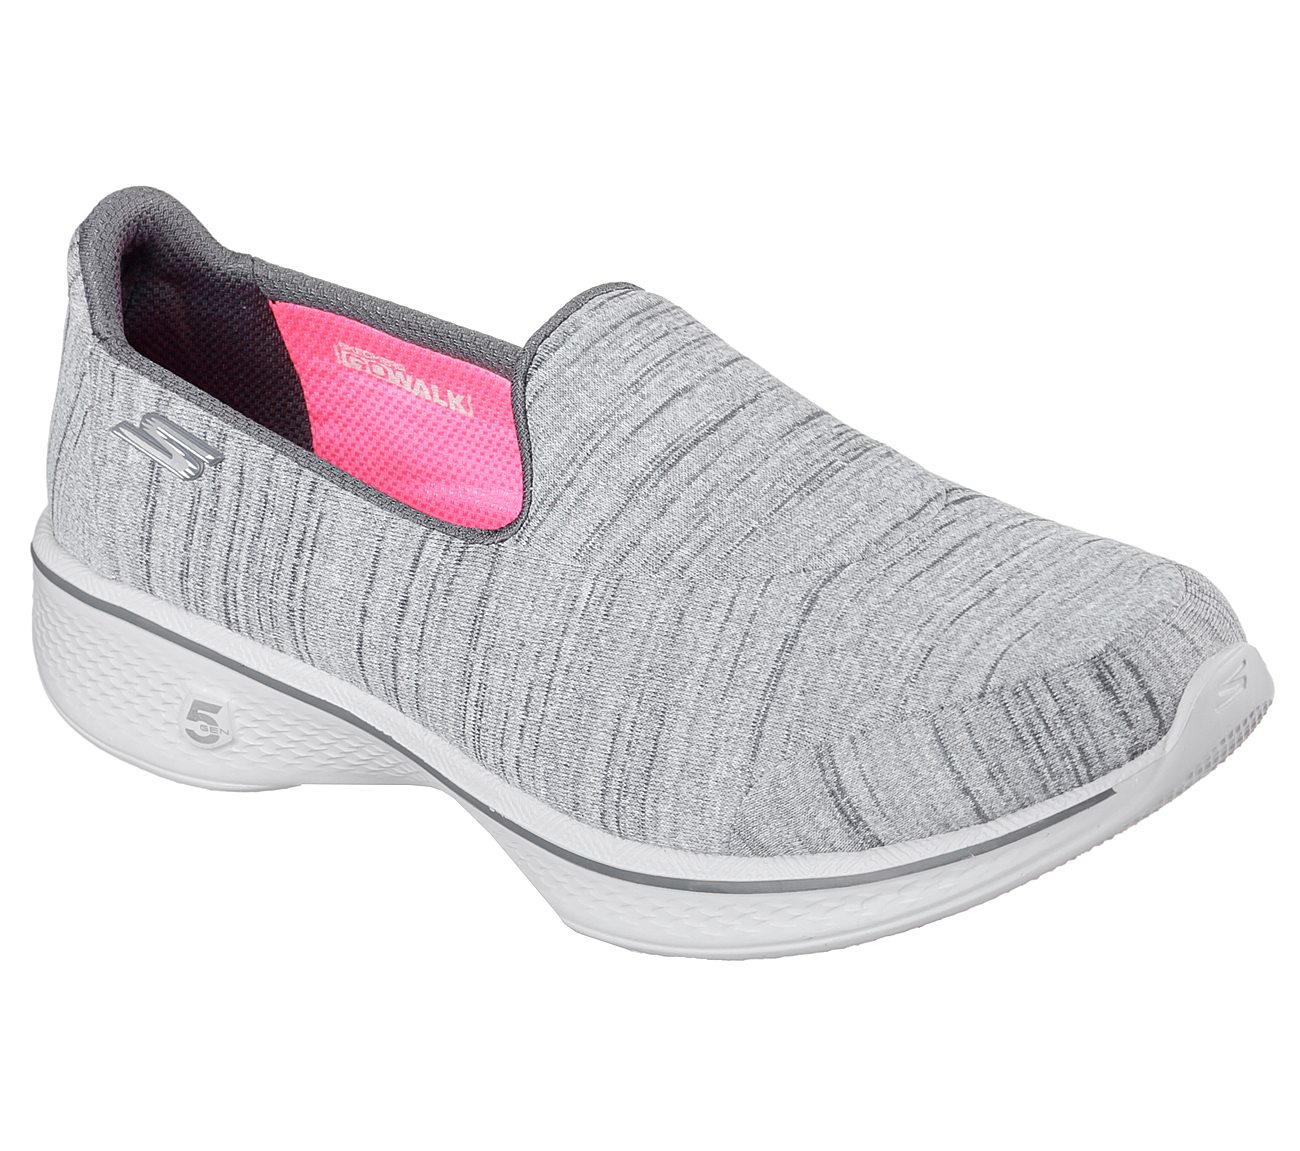 Skechers Gowalk 4 Satisfy Slip On Sneaker Gray - Womens Shoes